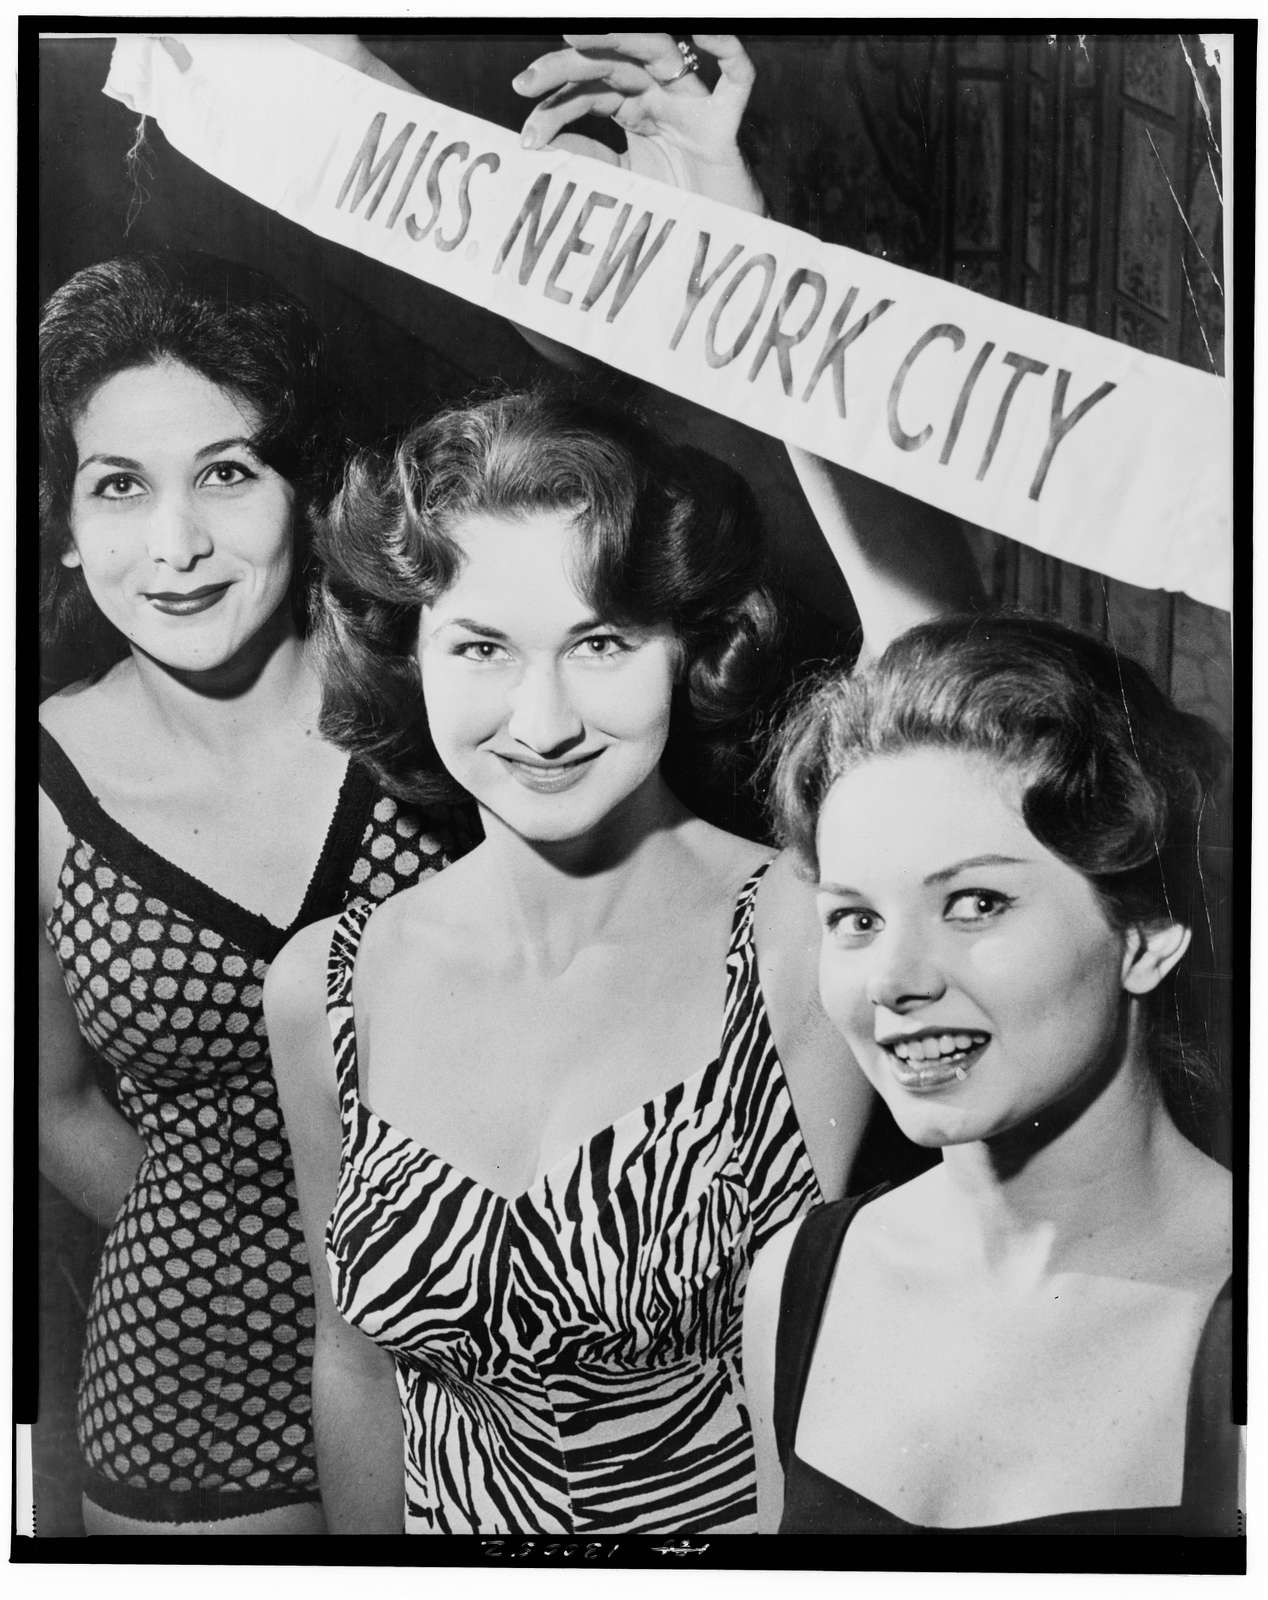 Grace Downs Airline Hostess School 447 15 Ave., Miss NYC Contest / World Telegram & Sun photo by Phil Stanziola.